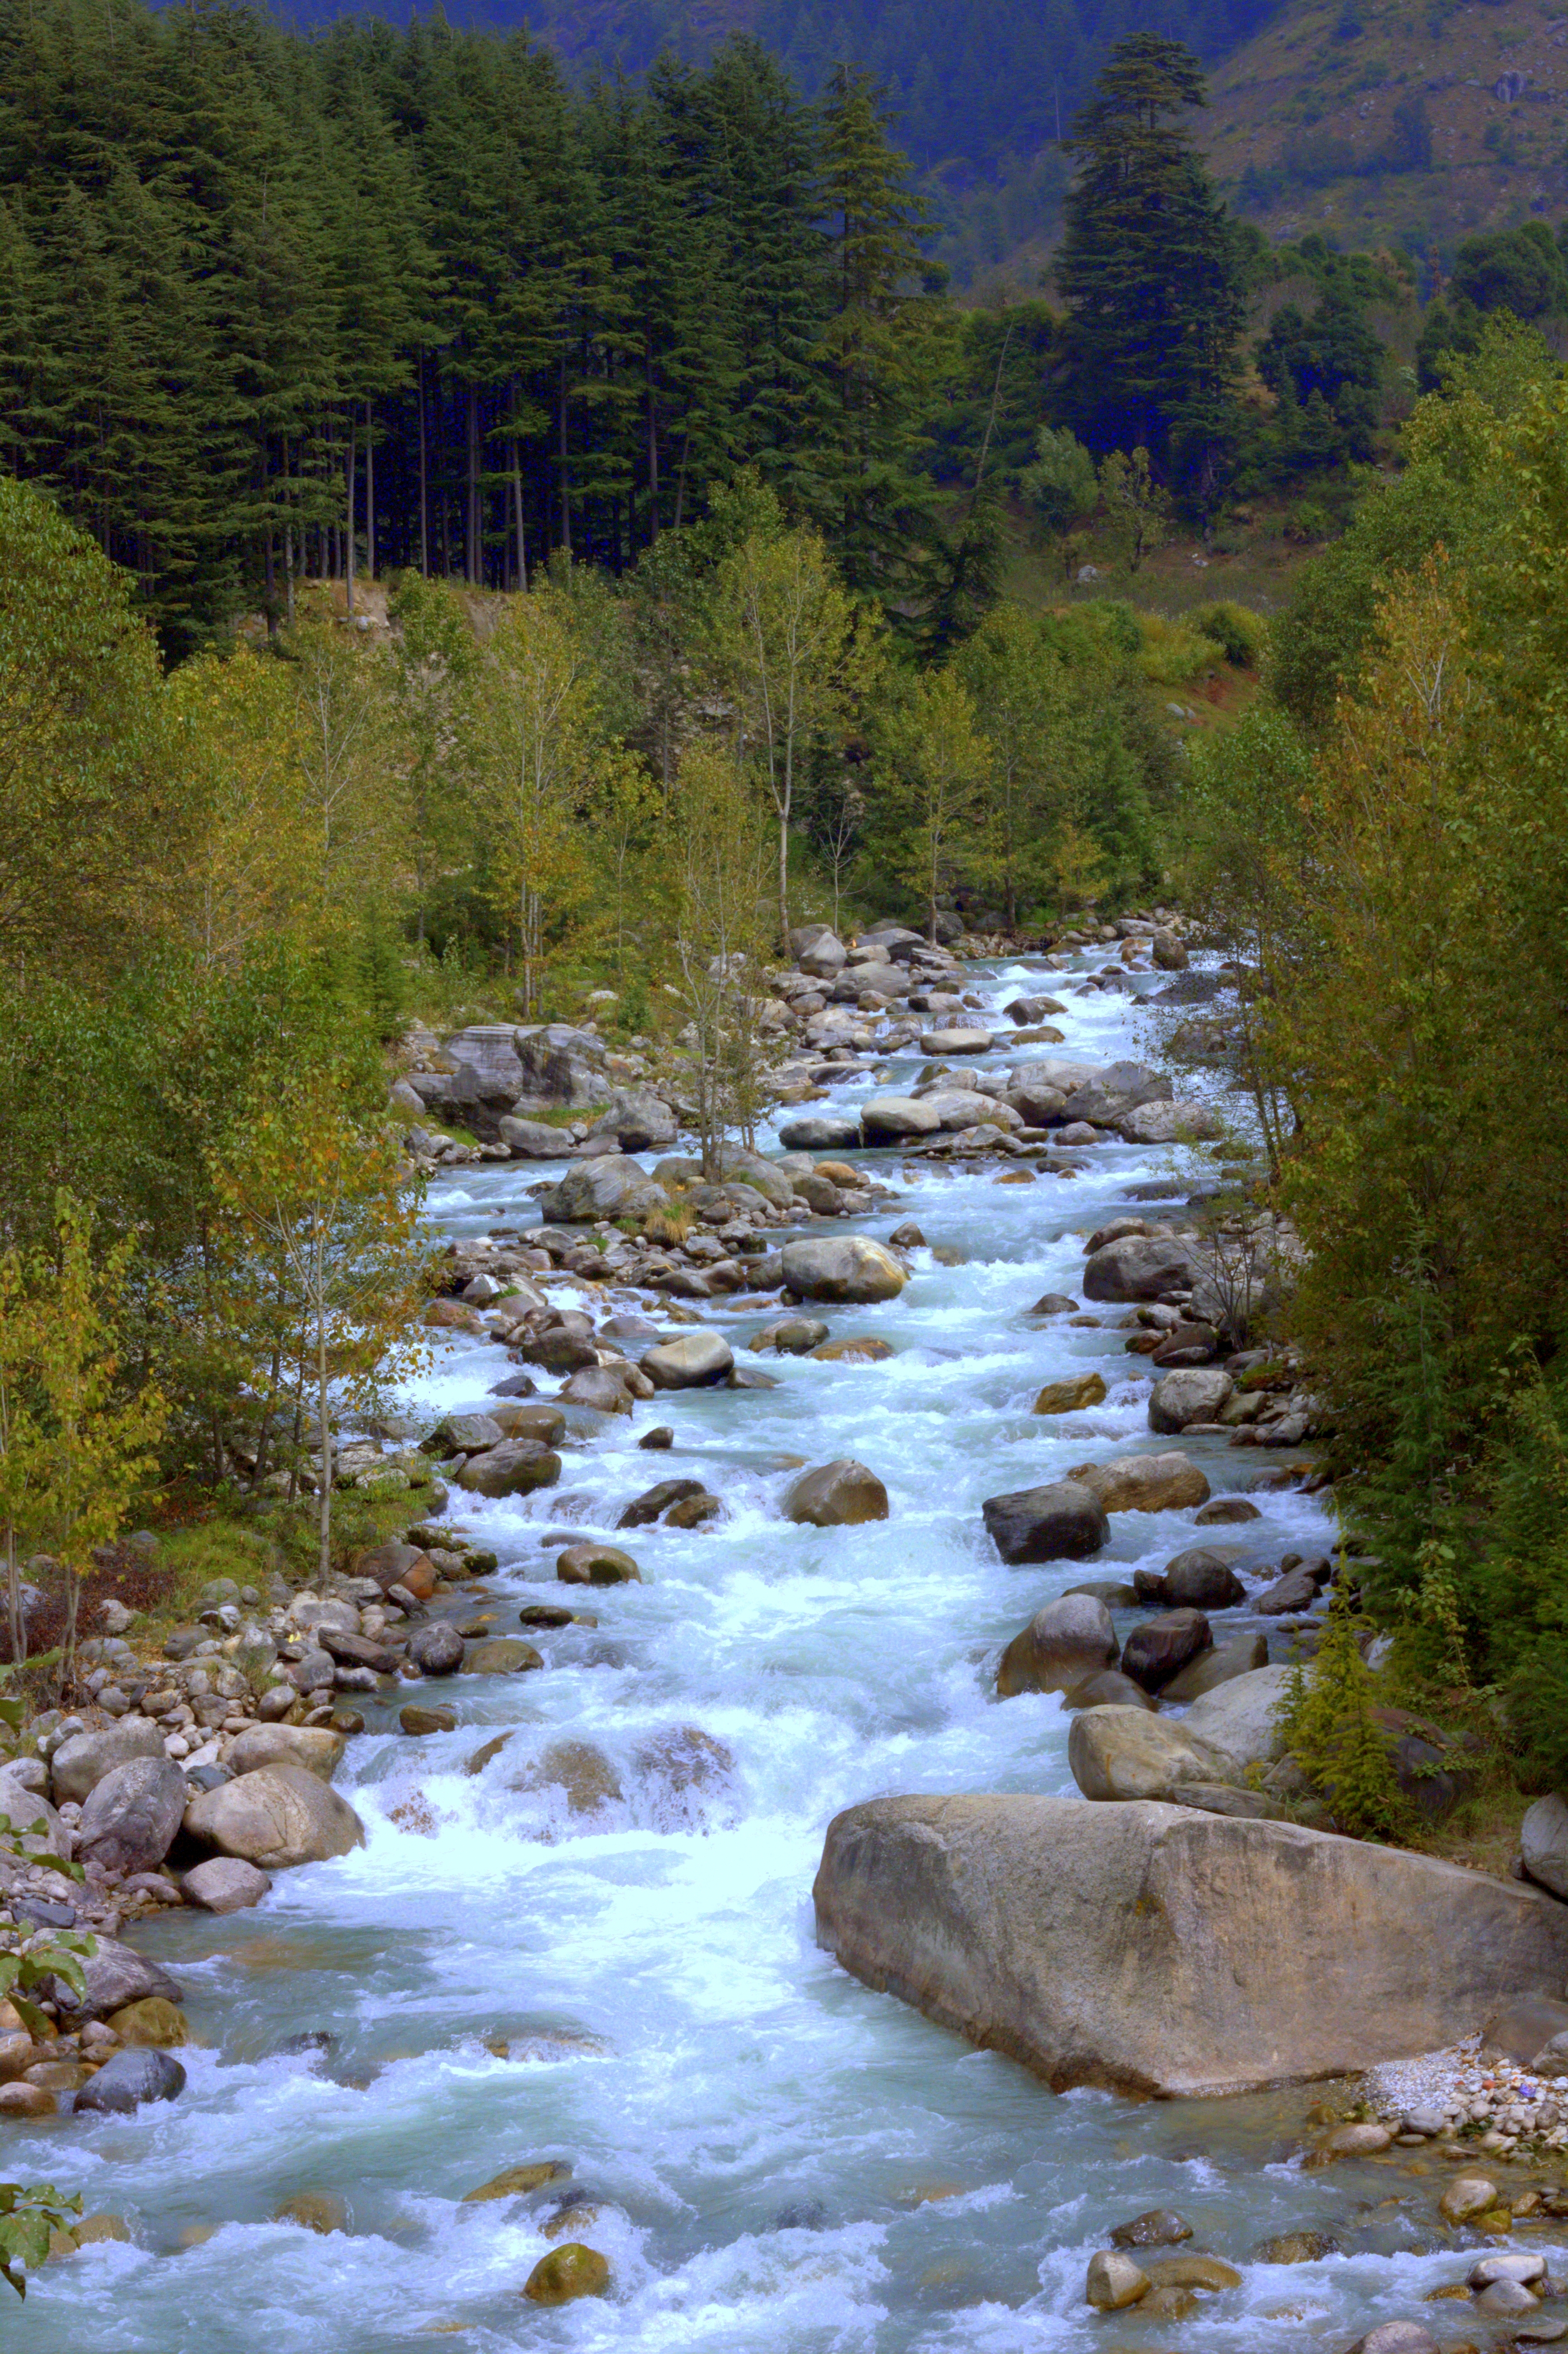 Fishing is a popular offbeat Manali activity